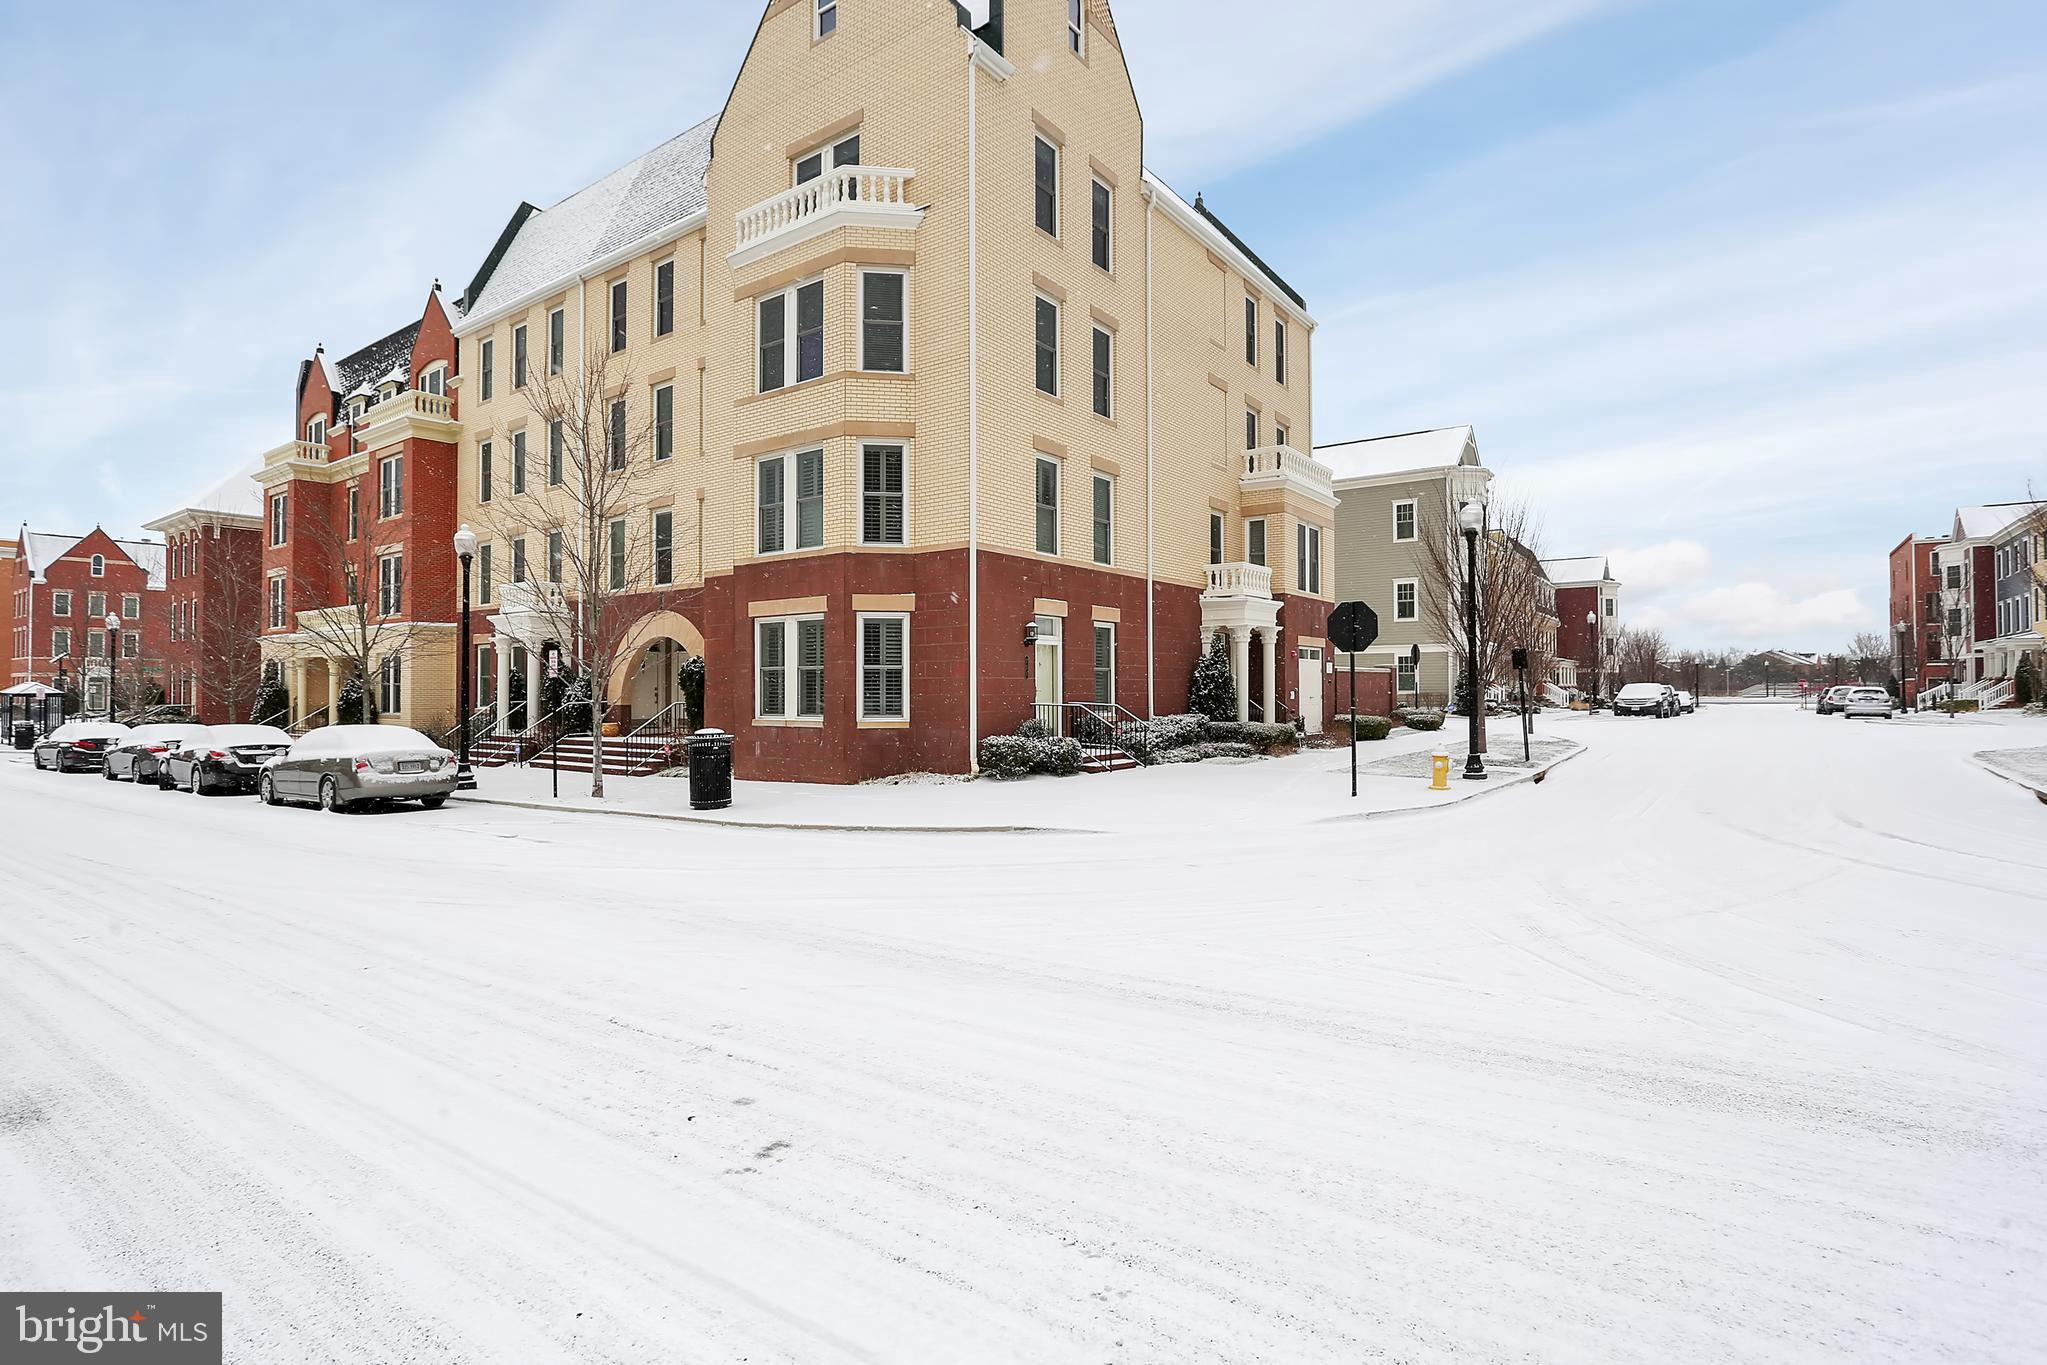 **Accepting Back Up Offers** RARE end-unit w/ 3 sides of windows nestled on the best corner in sought after Potomac Yard. Massive home spanning more than 2,500 square feet, featuring upgraded hardwood floors throughout main level, thick moldings, updated lighting and high ceilings. The open kitchen boasts ample granite counter space, extra large island, stainless steel appliances and entertaining area w/ balcony. Natural light and decorator neutral paint flow throughout the inviting open living/dining room. 3 bedrooms, 2.5 baths, with additional laundry room, and plenty of storage on upper level. The bright master suite includes luxurious bath with dual vanities, a spa-like shower and over-sized walk-in closet. Amazing lot location and attached garage! In Alexandria minutes to Crystal City/National Landing, D.C., Reagan National, and Old Town